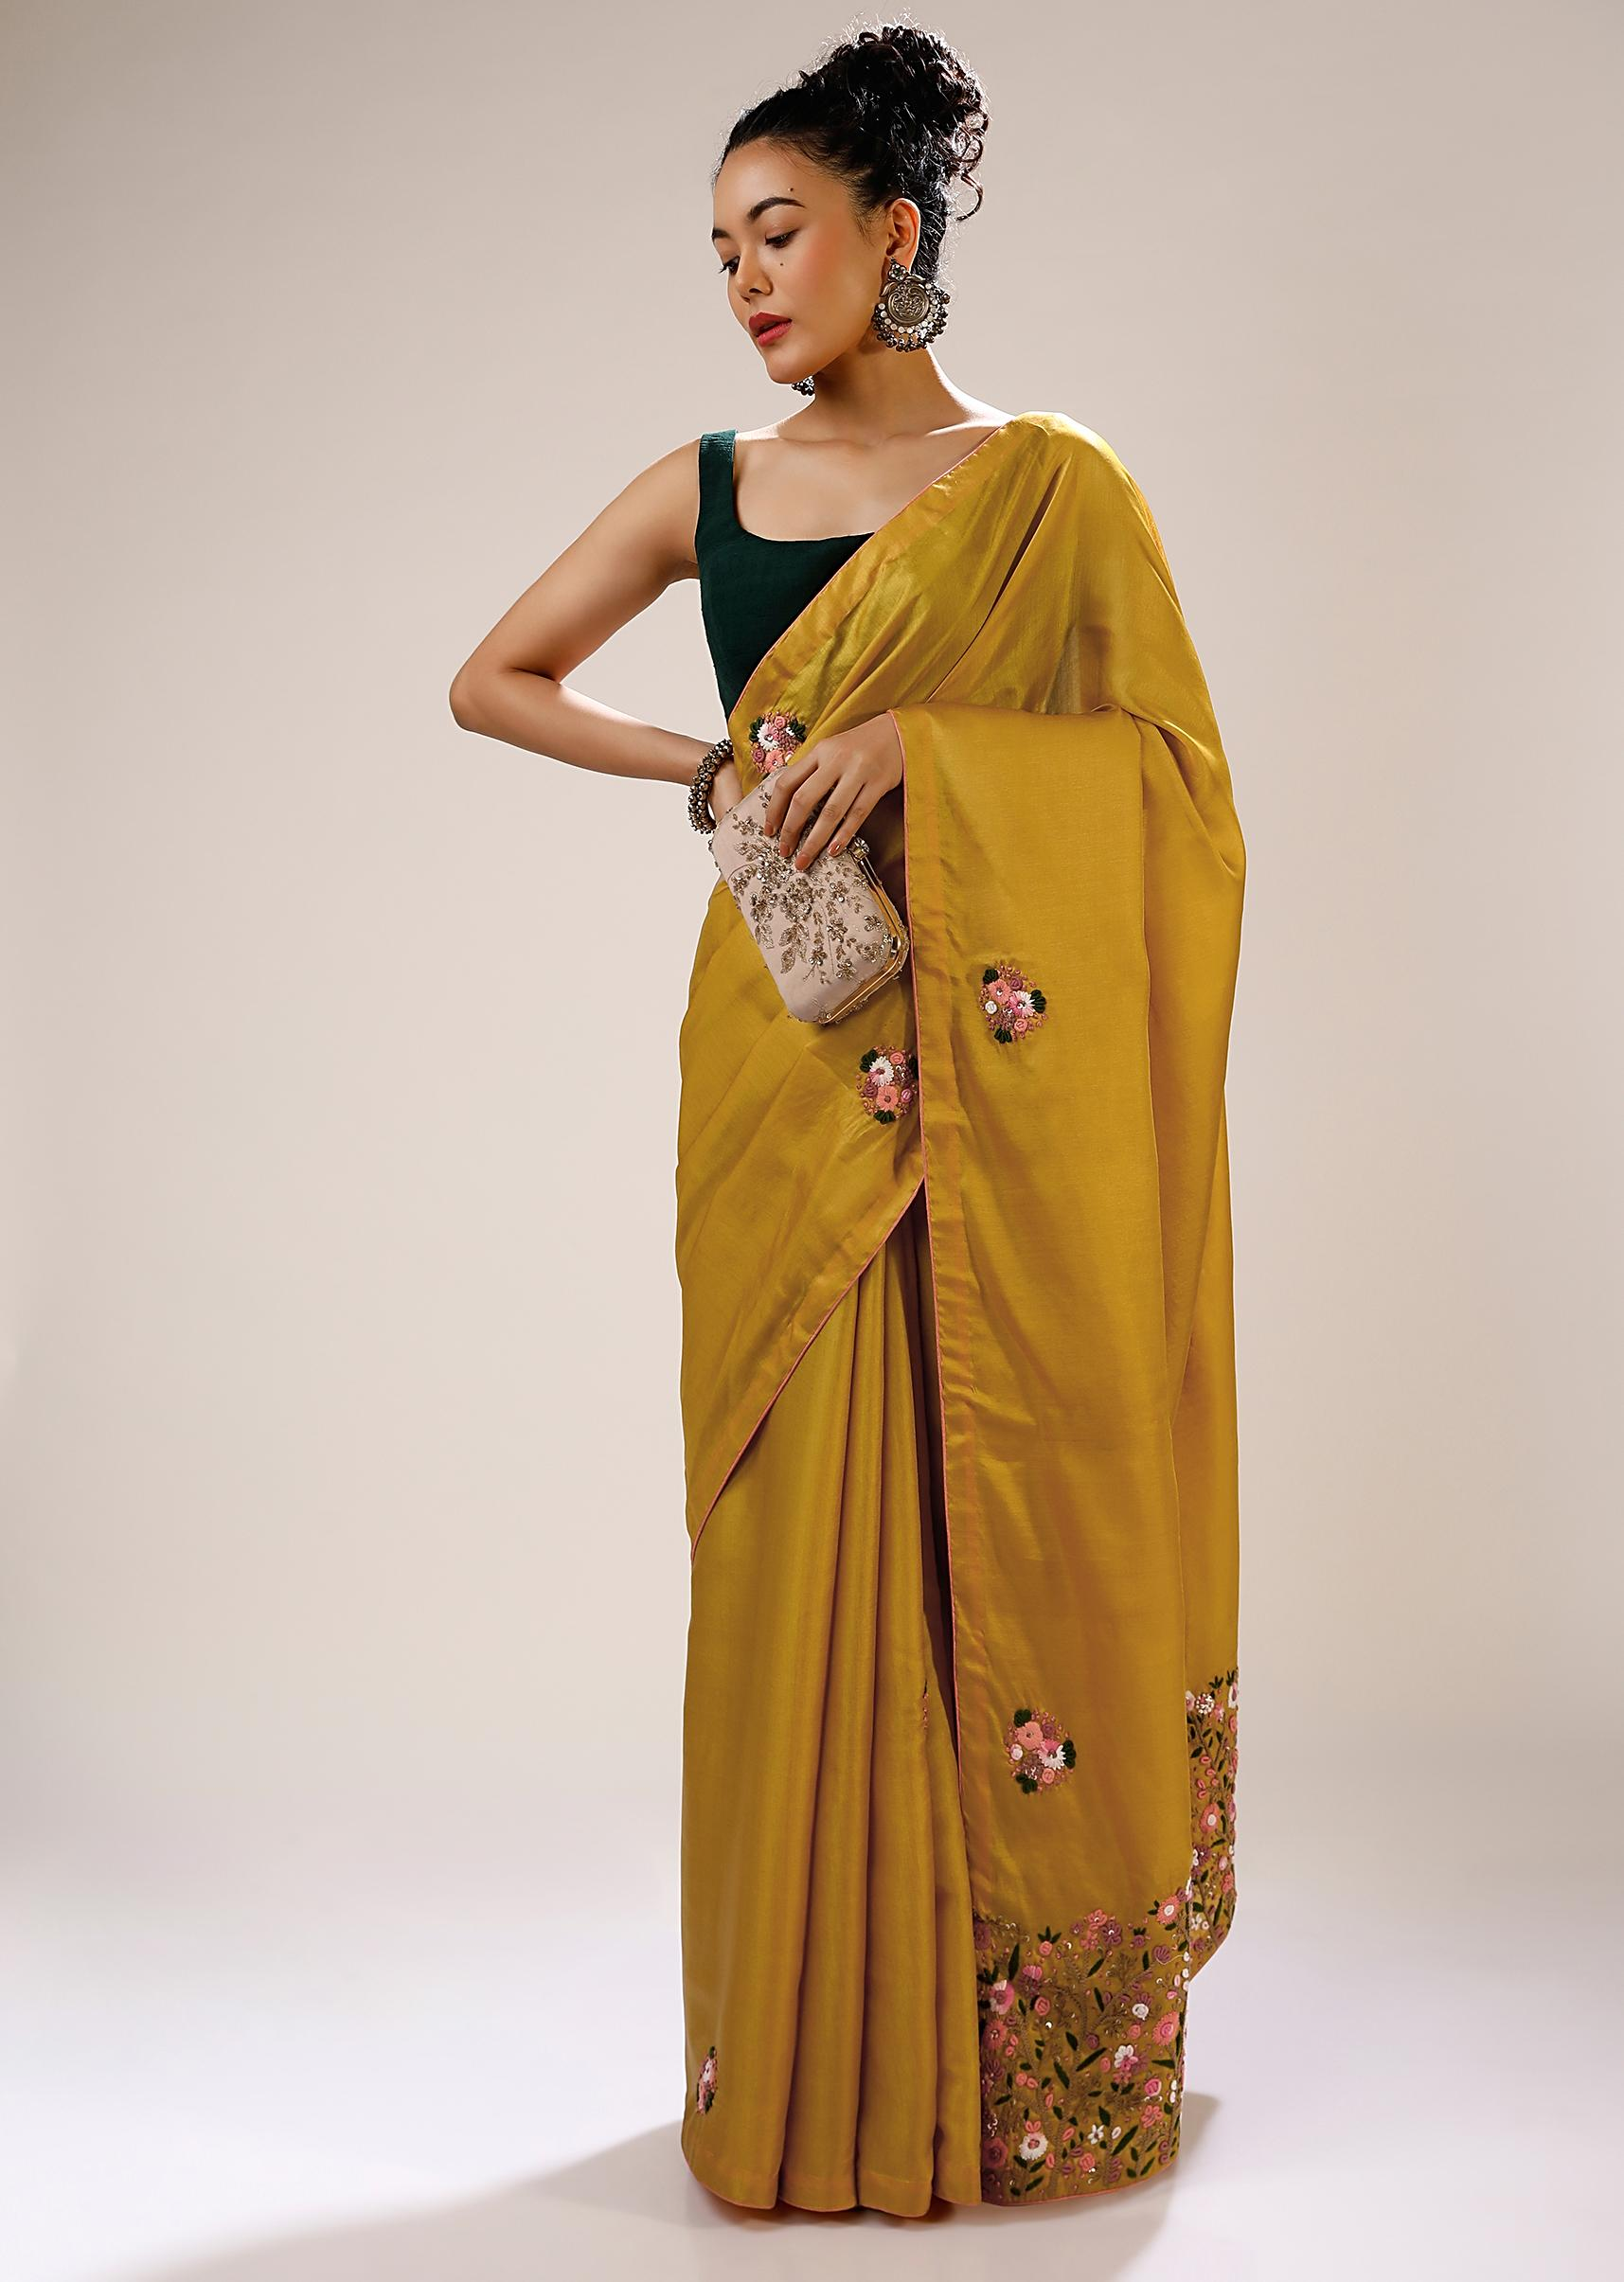 Honey Gold Saree In Dupion Silk With Multi Colored Bud Embroidered Floral Buttis And Heavy Pallu Design Online - Kalki Fashion